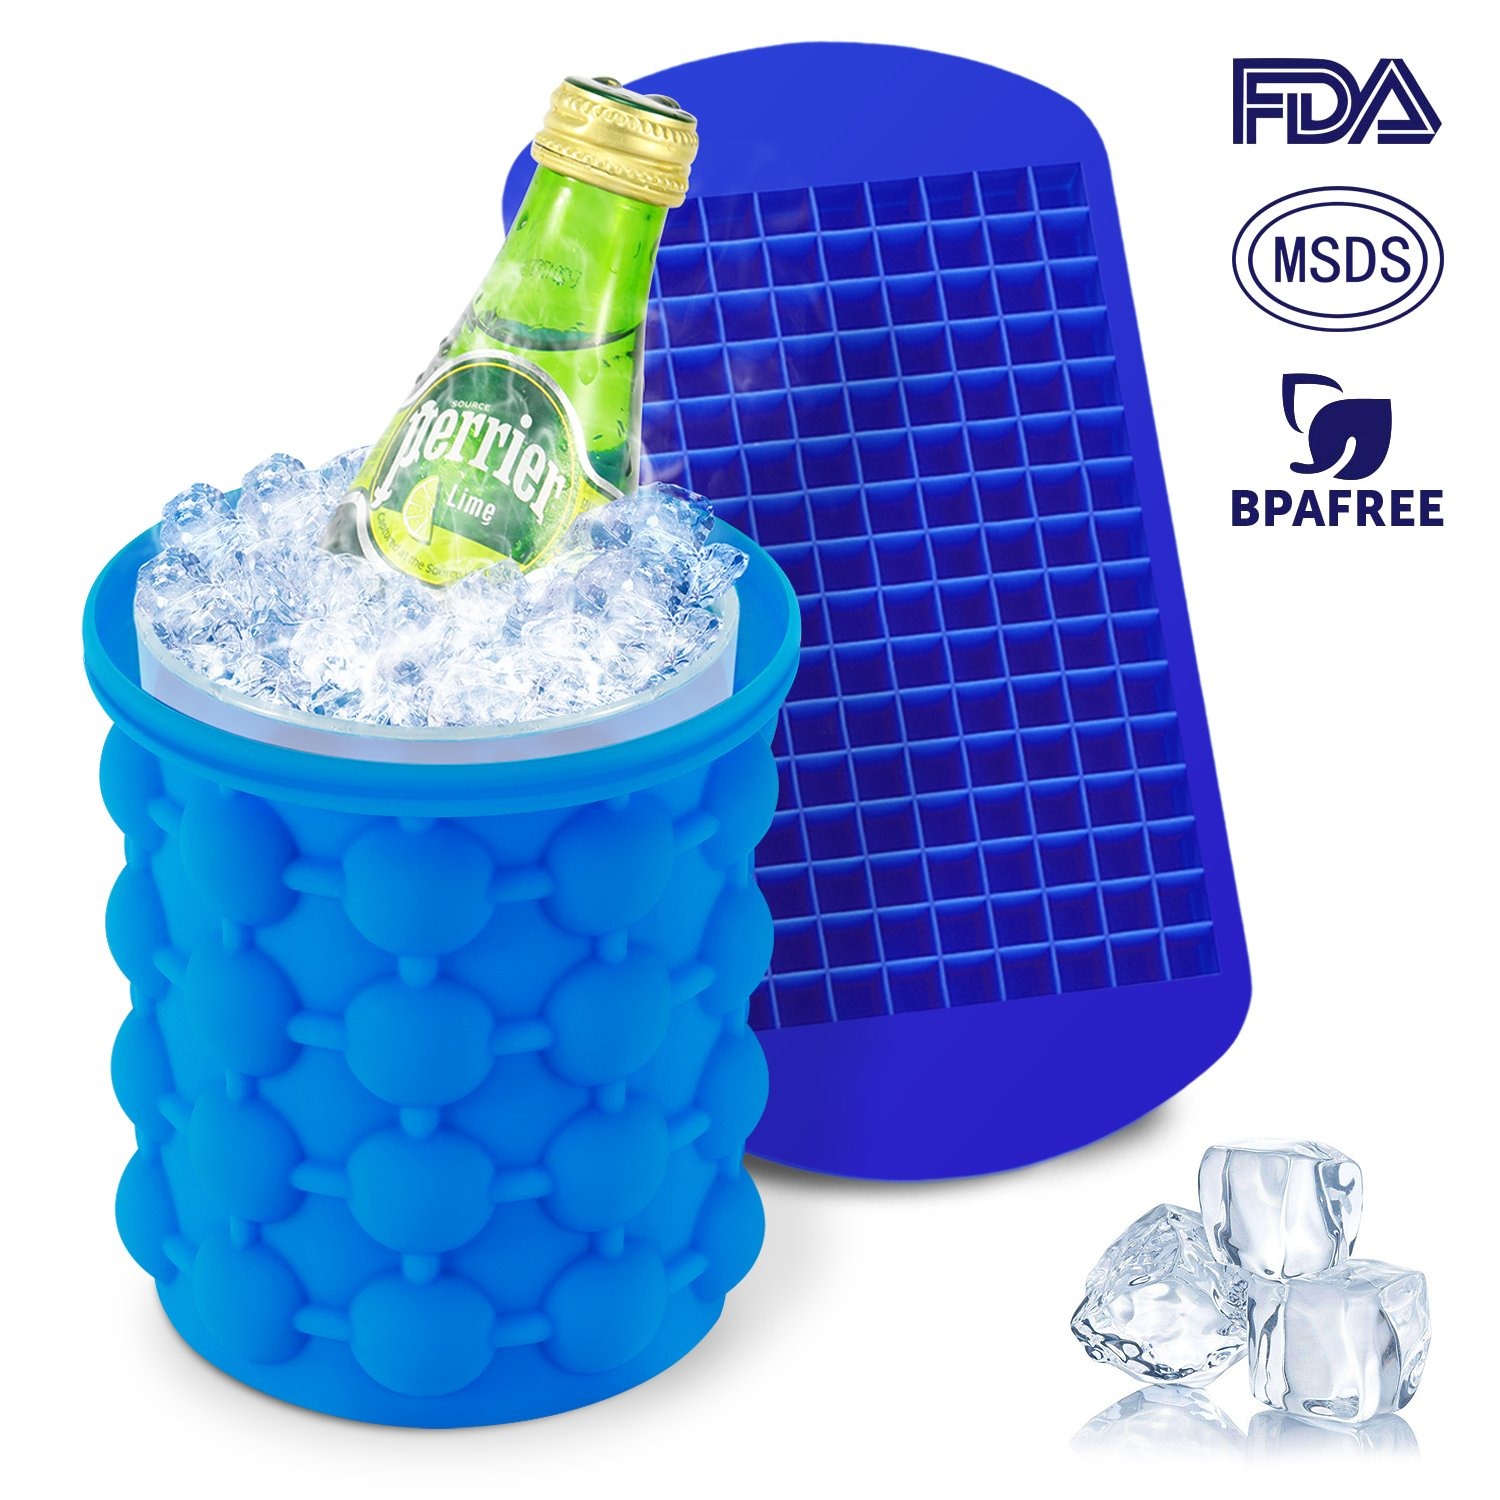 Ice Cube Maker Genie, Magicfly (5X 5.5 Inch) Silicone Ice Cube Genie Bucket with Ice Cube Trays for Chilling Whiskey, Cocktail, Beverages, Non-Toxic, Blue